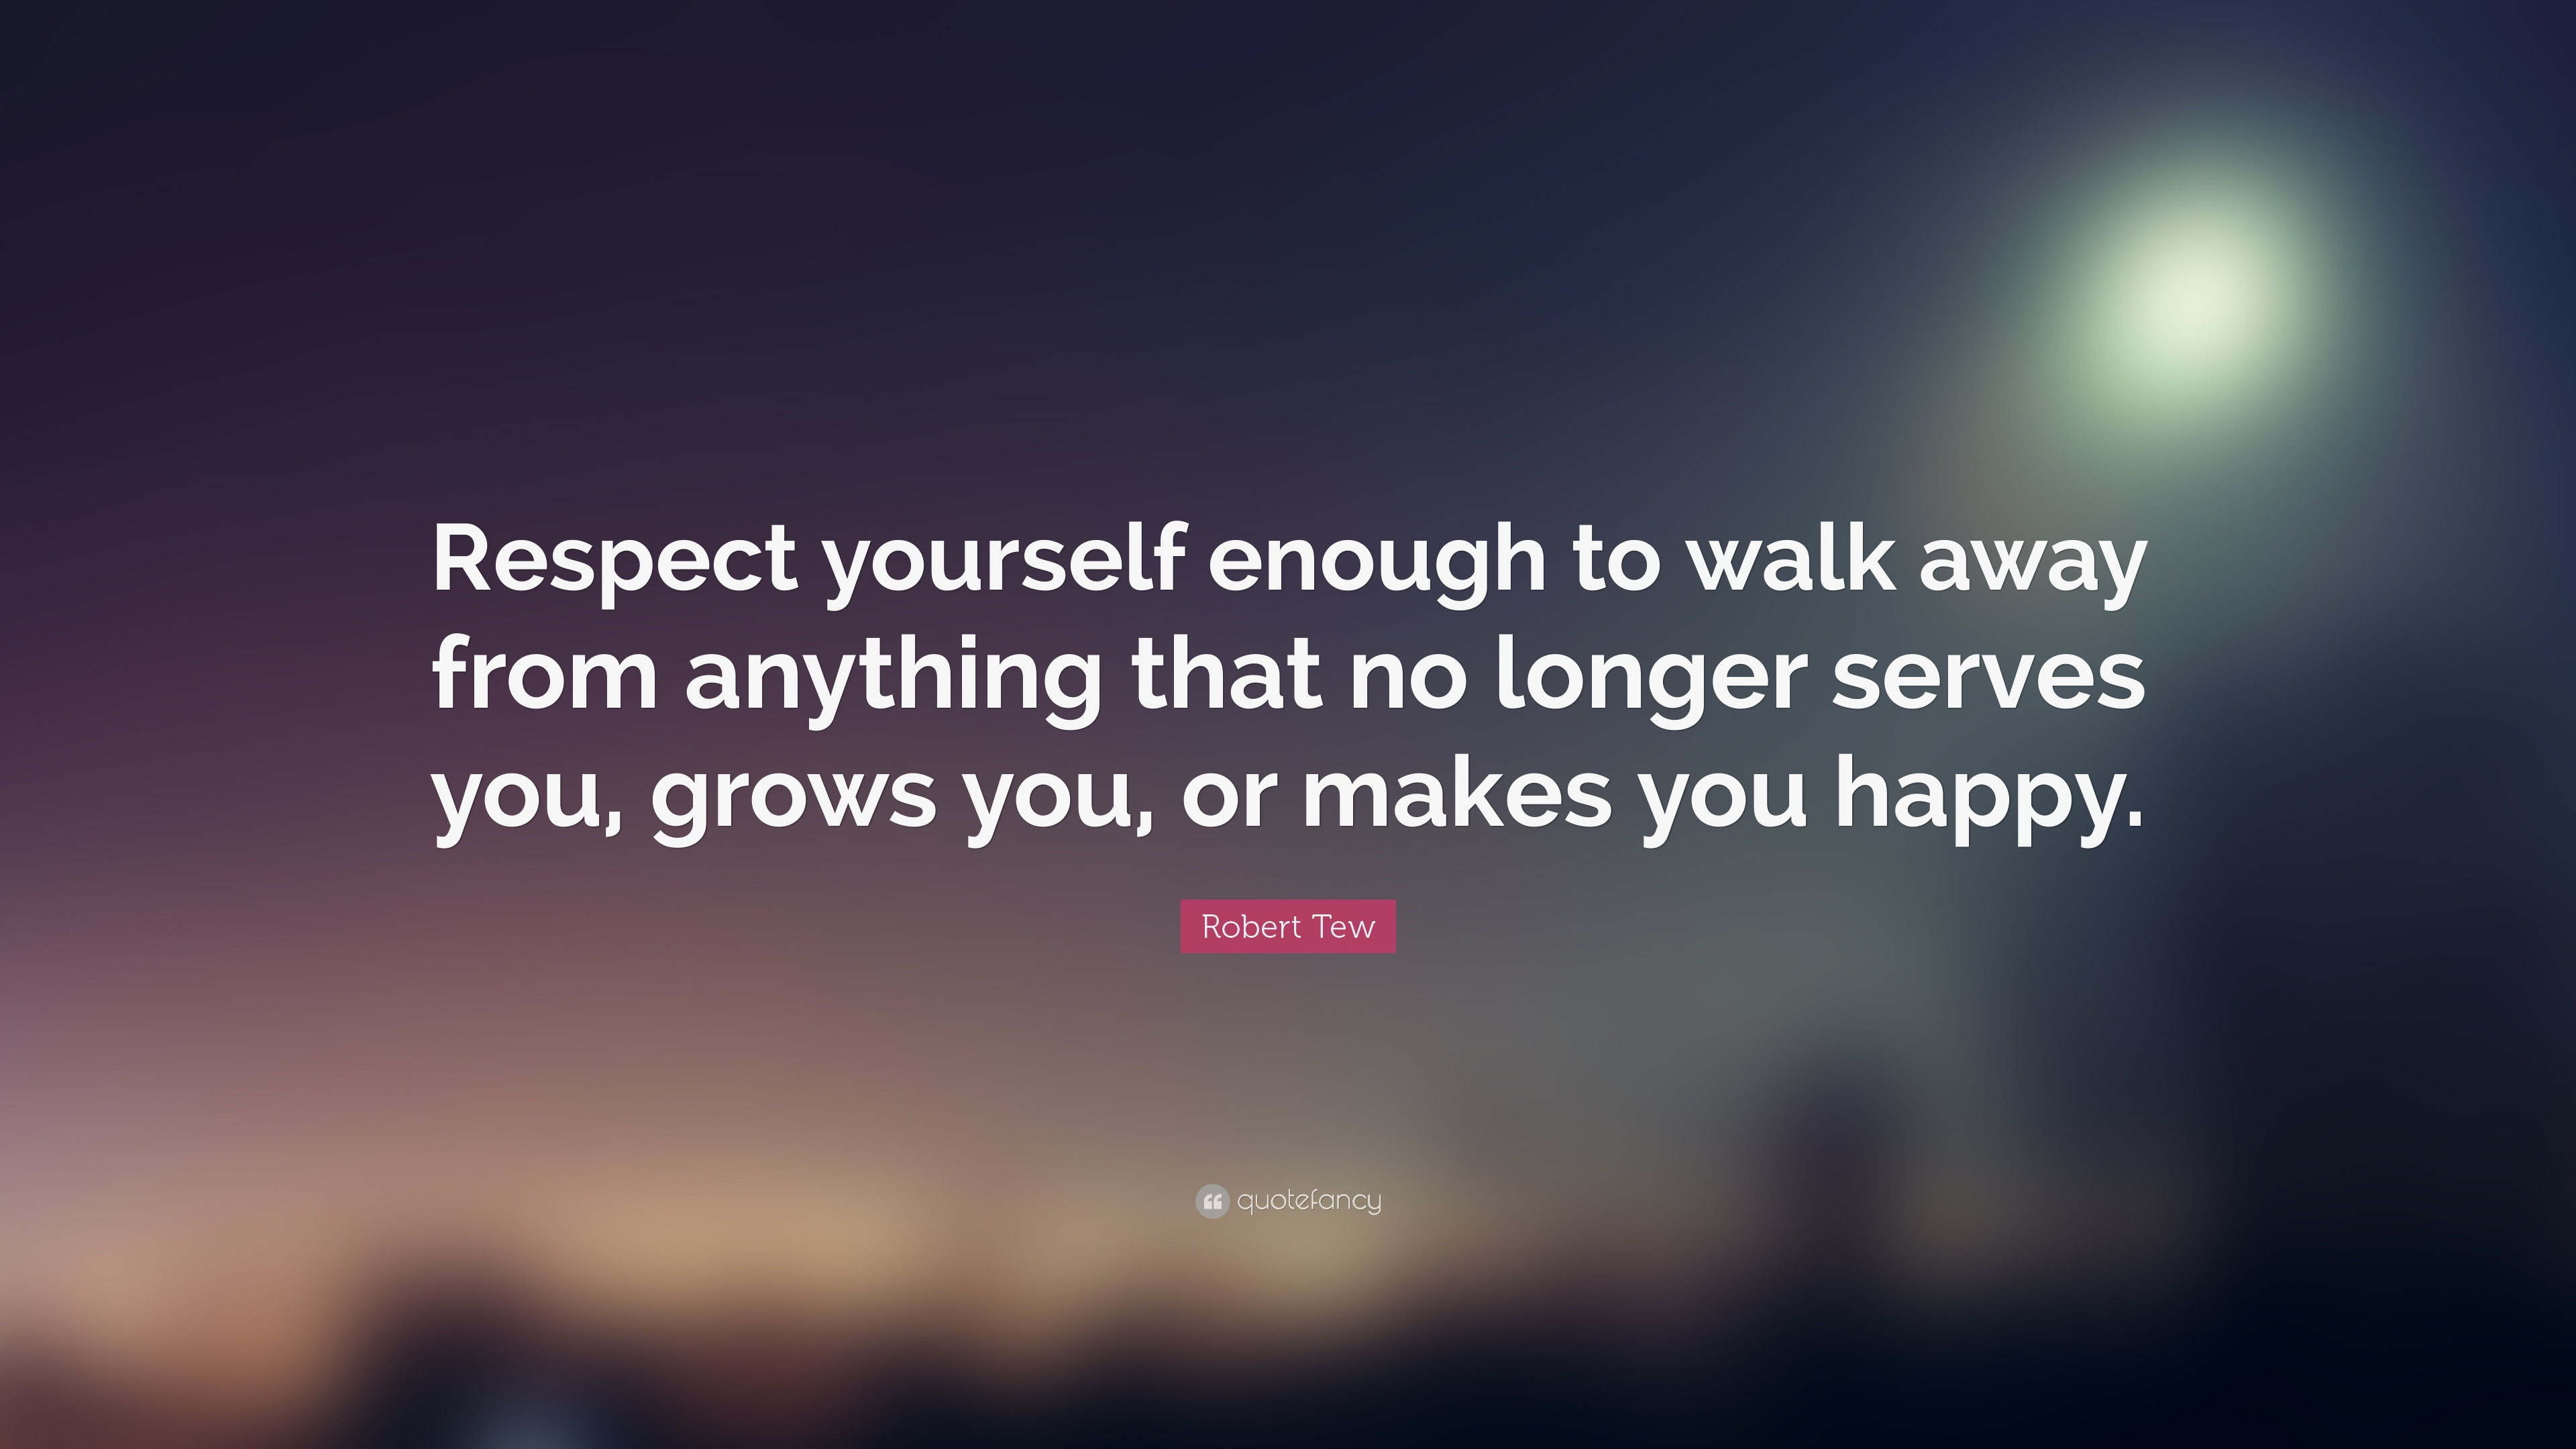 Robert Tew Quote Respect Yourself Enough To Walk Away From